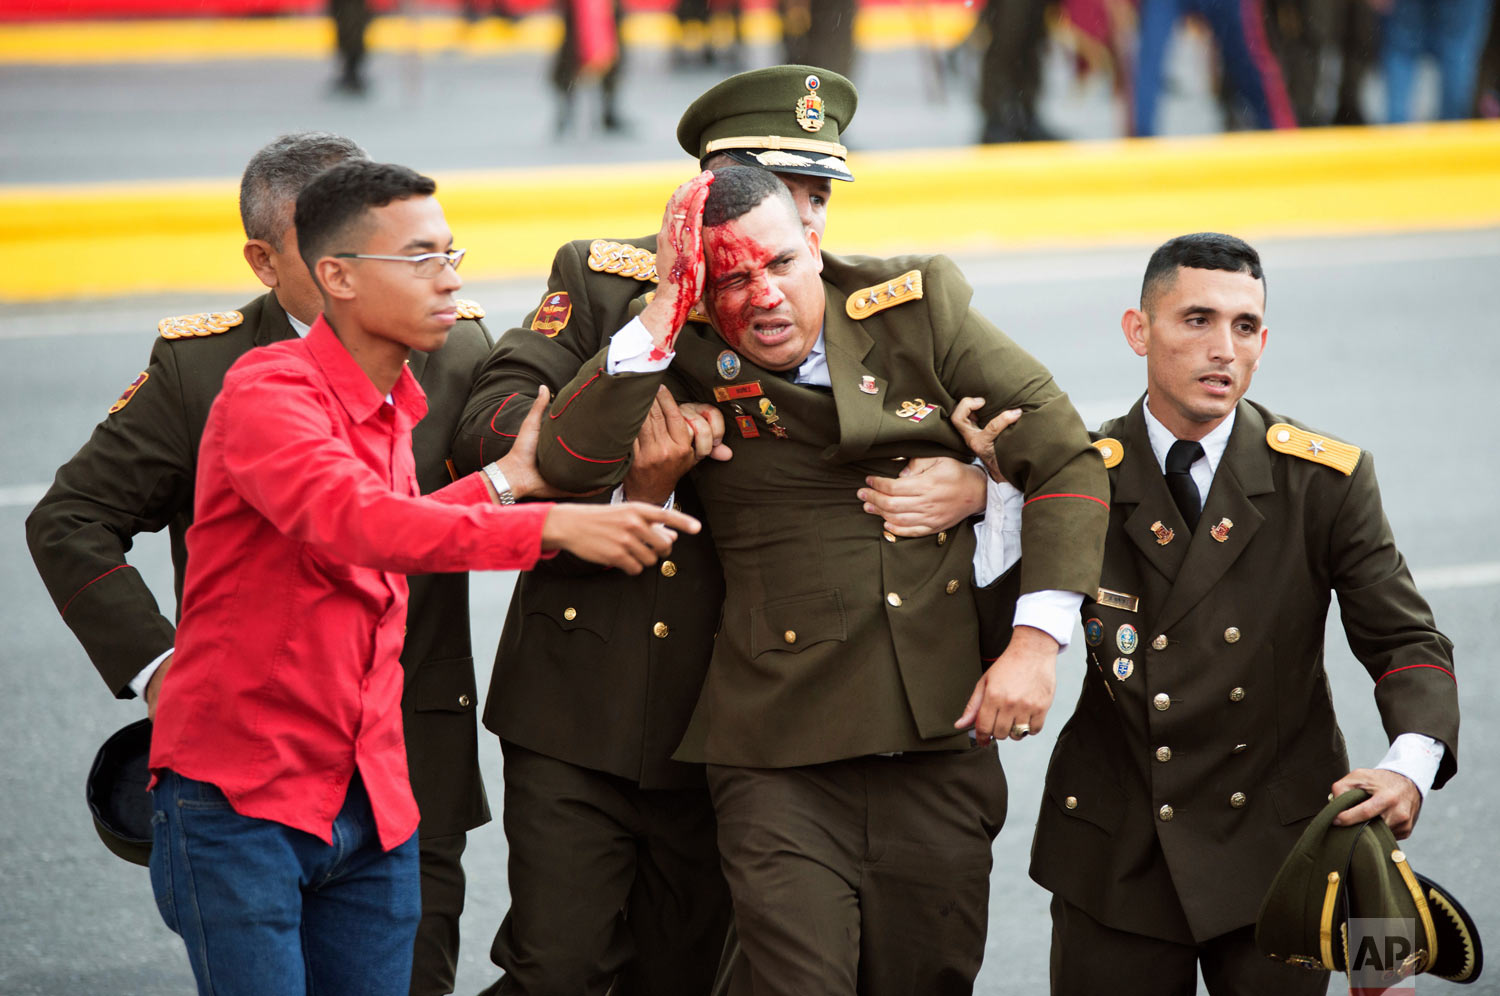 An uniformed official bleeds from the head following an incident during a speech by Venezuela's President Nicolas Maduro in Caracas, Venezuela, Saturday, Aug. 4, 2018. Seven people were injured in the apparent attack which came as Maduro celebrated the National Guard's 81st anniversary. Maduro's speech was abruptly cut short and soldiers could be seen breaking ranks and scattering. (Xinhua via AP)